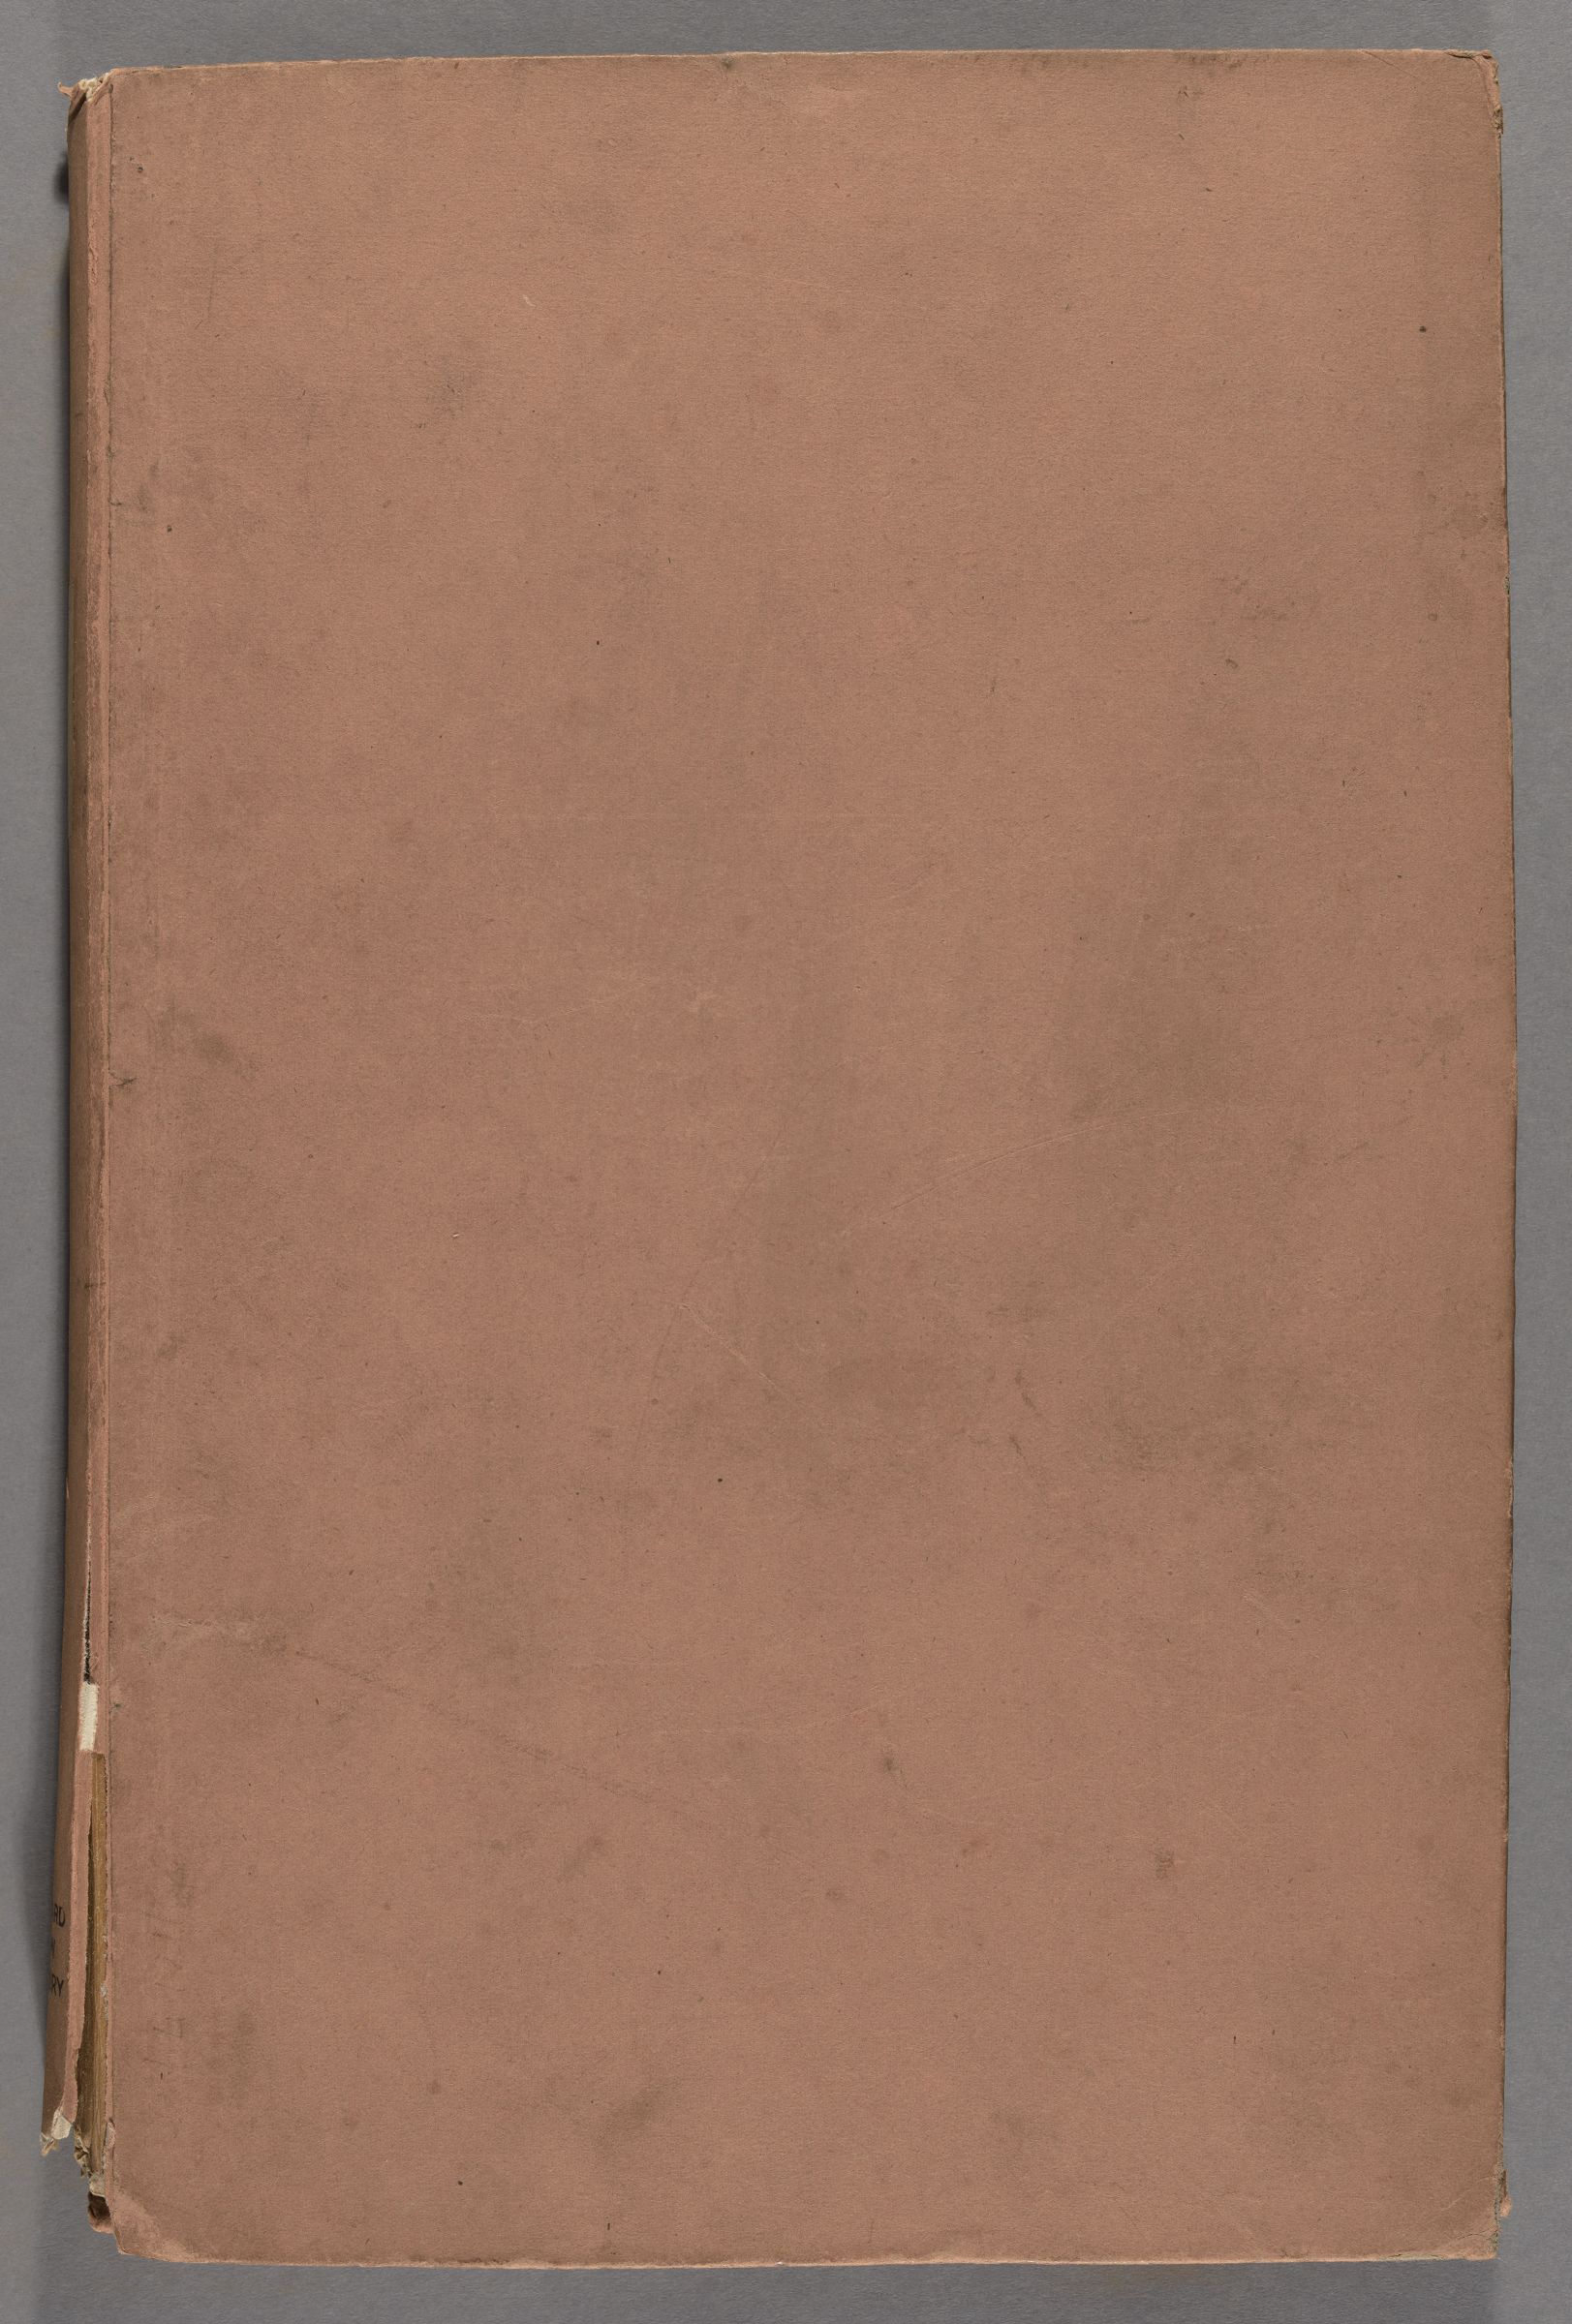 Record of cases, 1738-1758